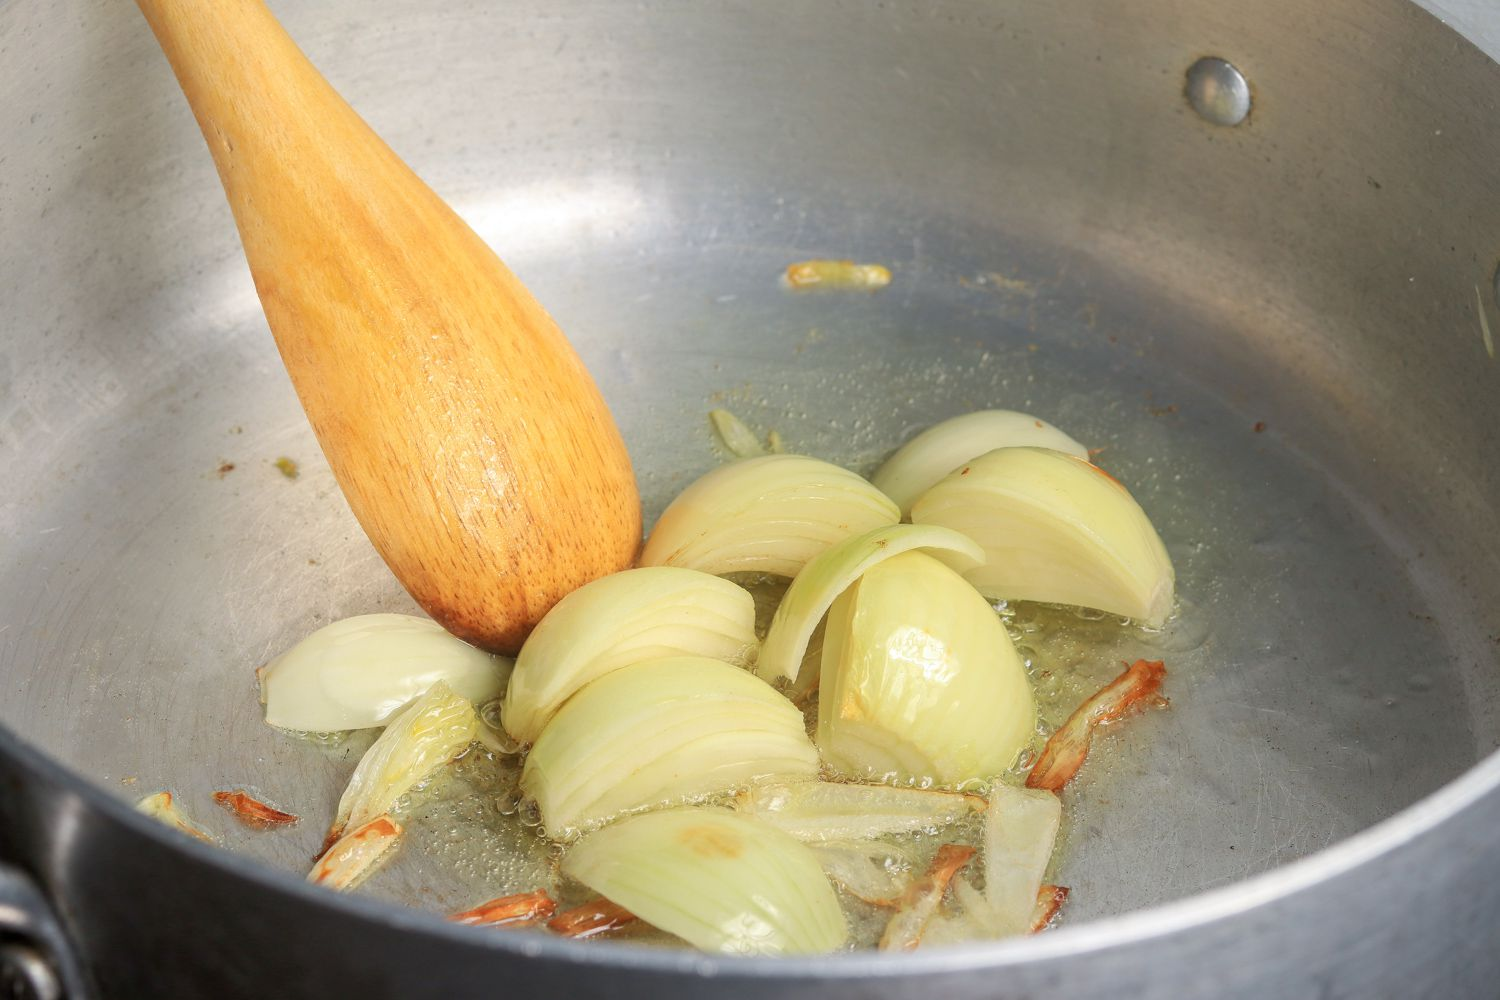 Onions cooking down in pan